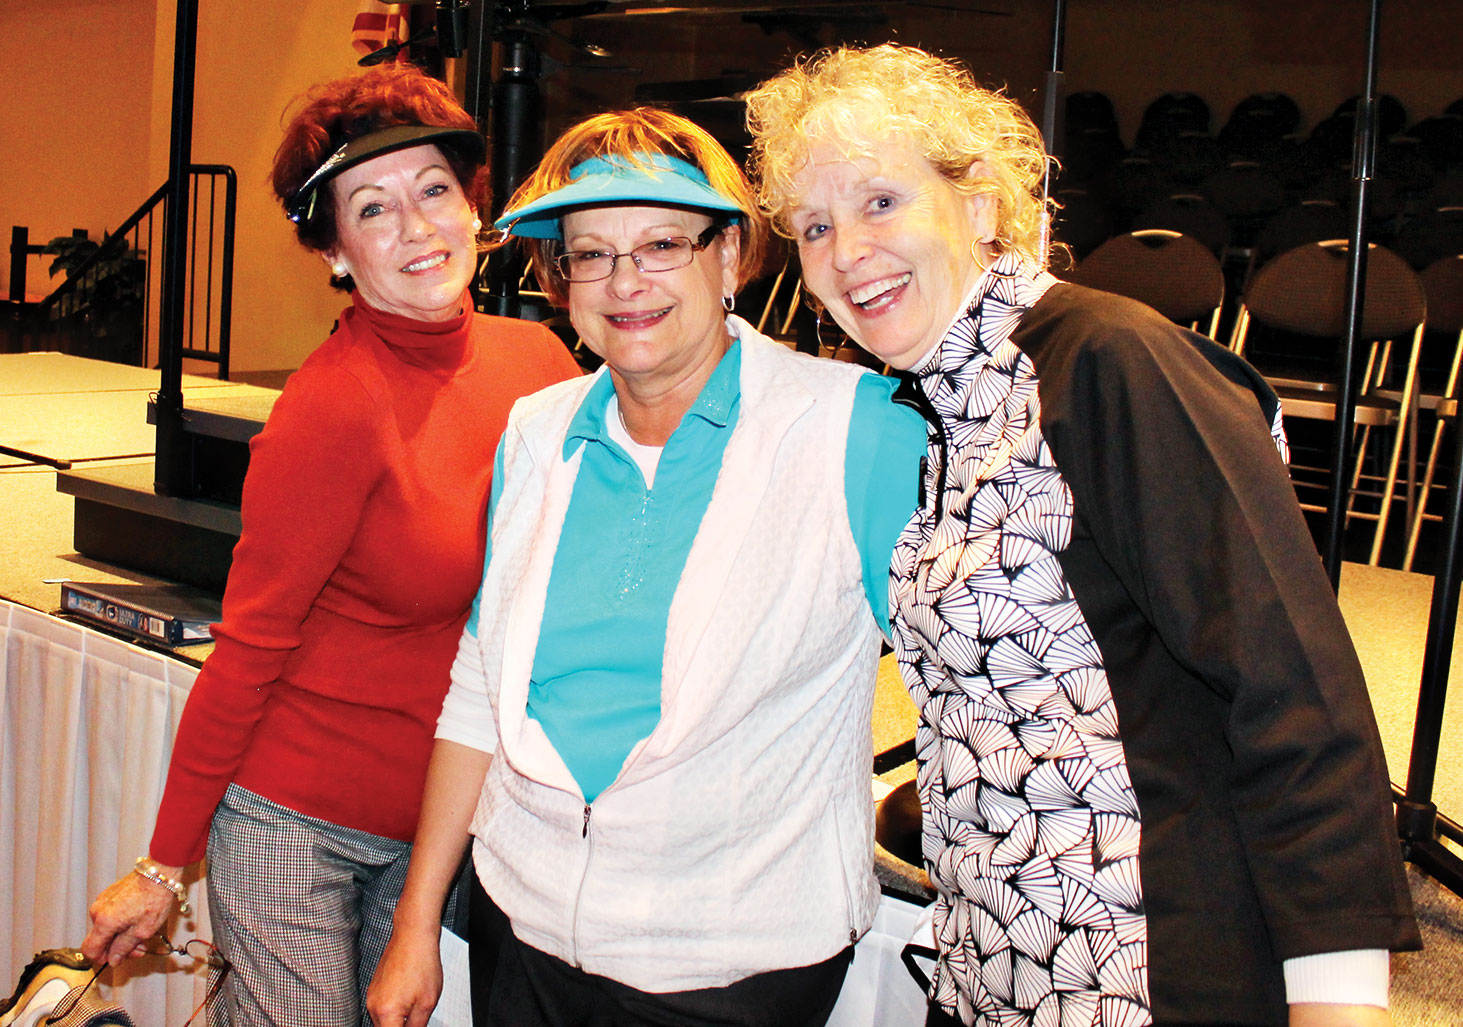 Left to right: Tina Hoffenberg, Janie Farnsworth and Debra Harwell